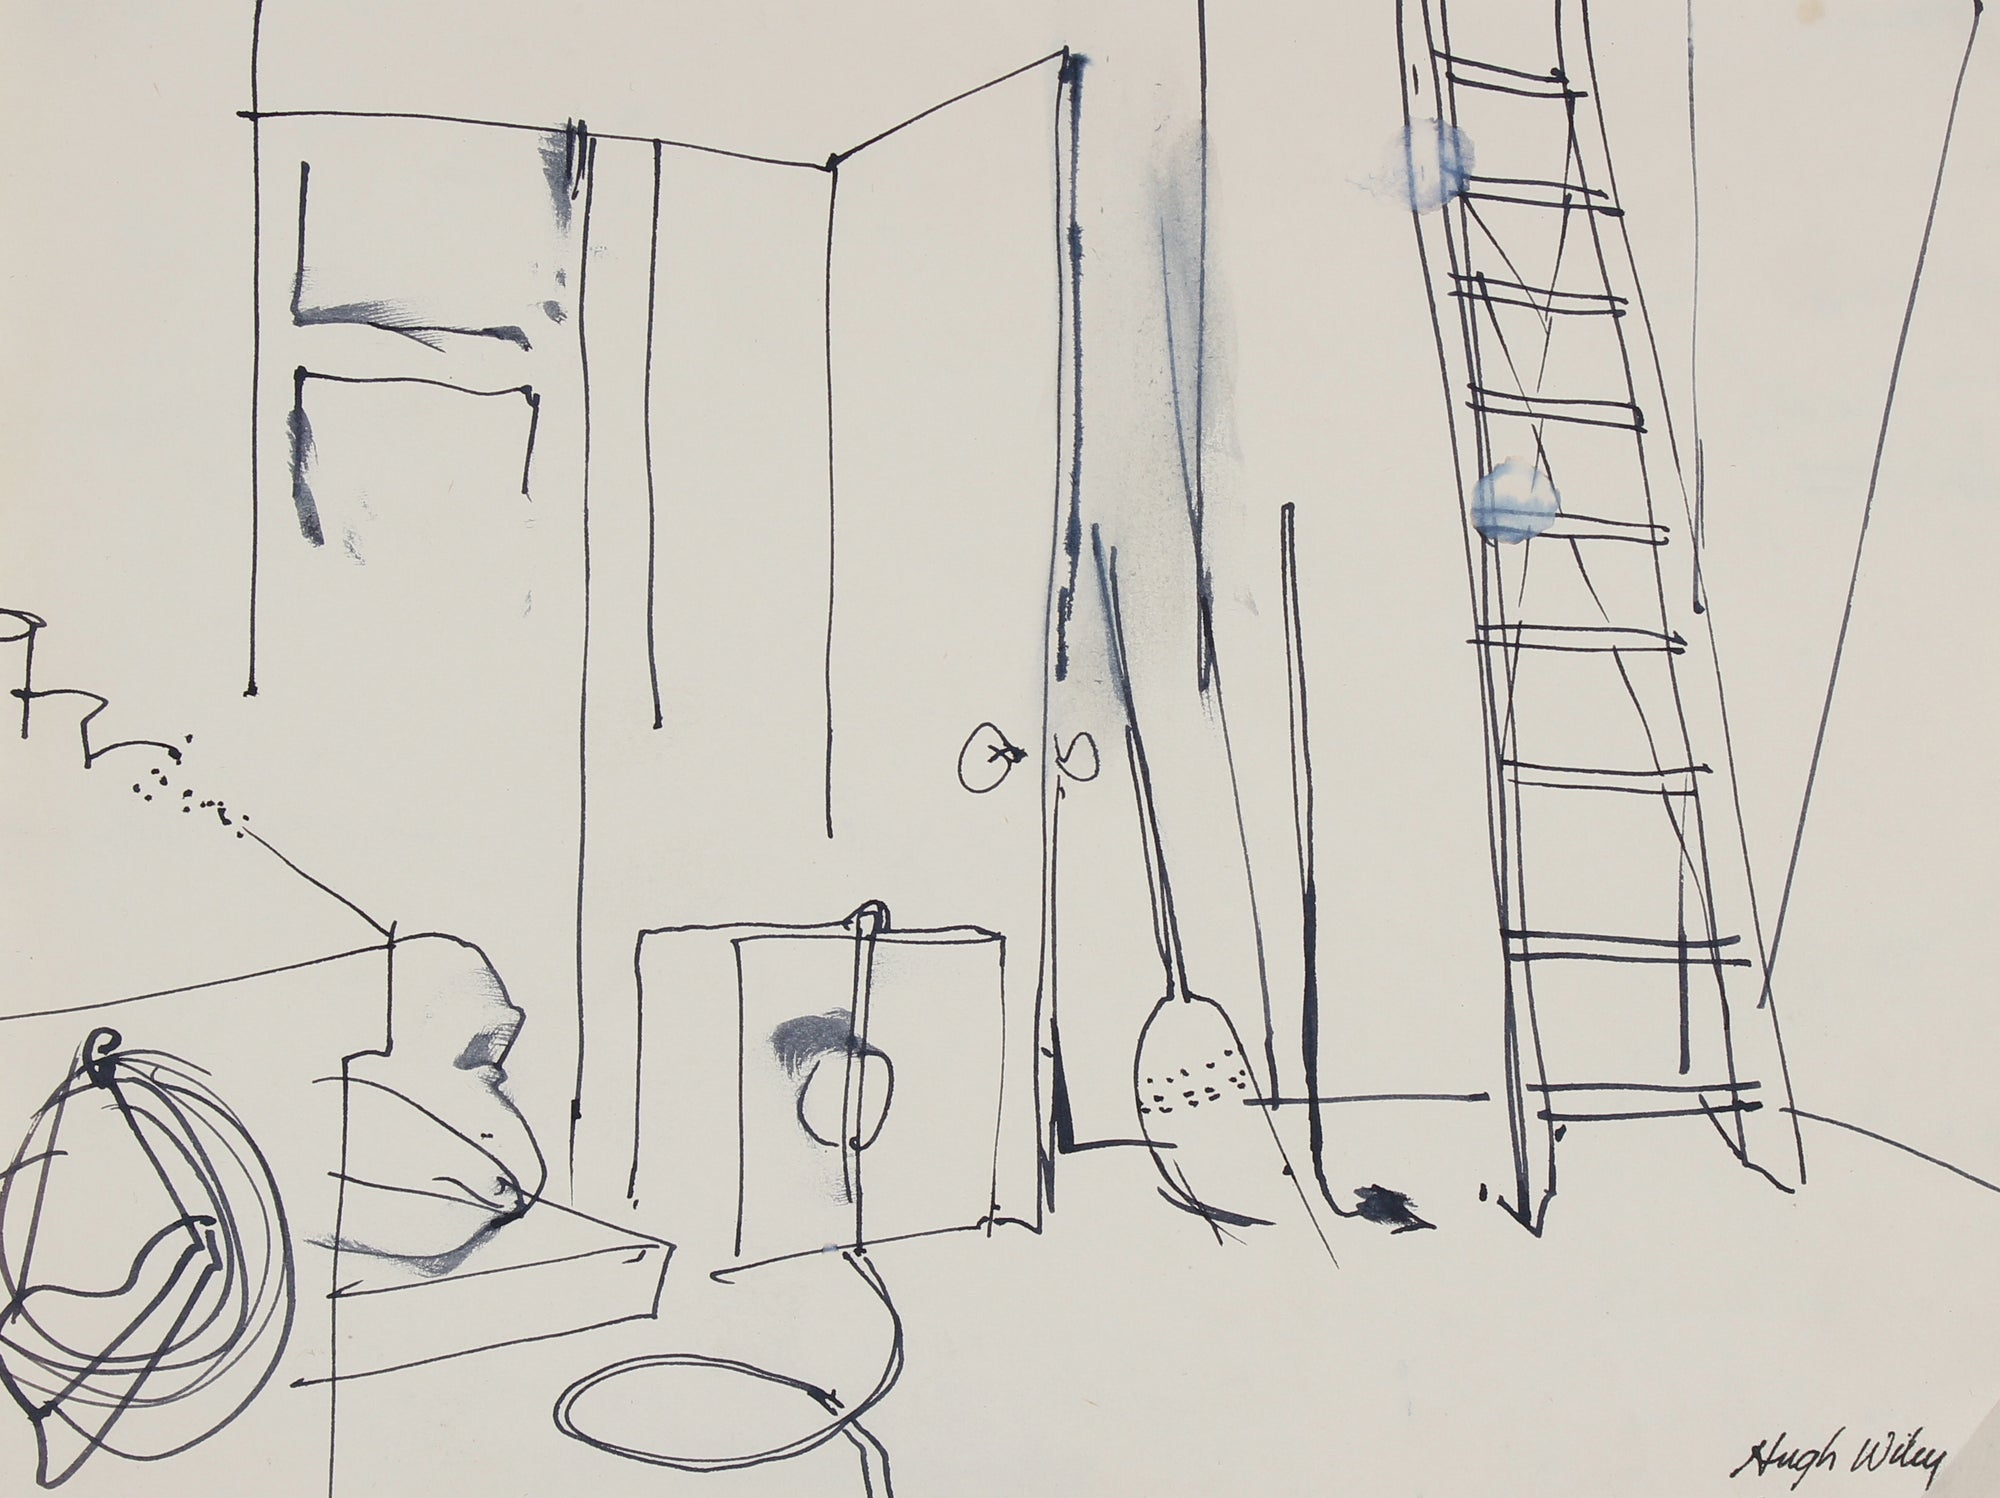 Sketch of a Garage <br>1966 Ink <br><br>#89339